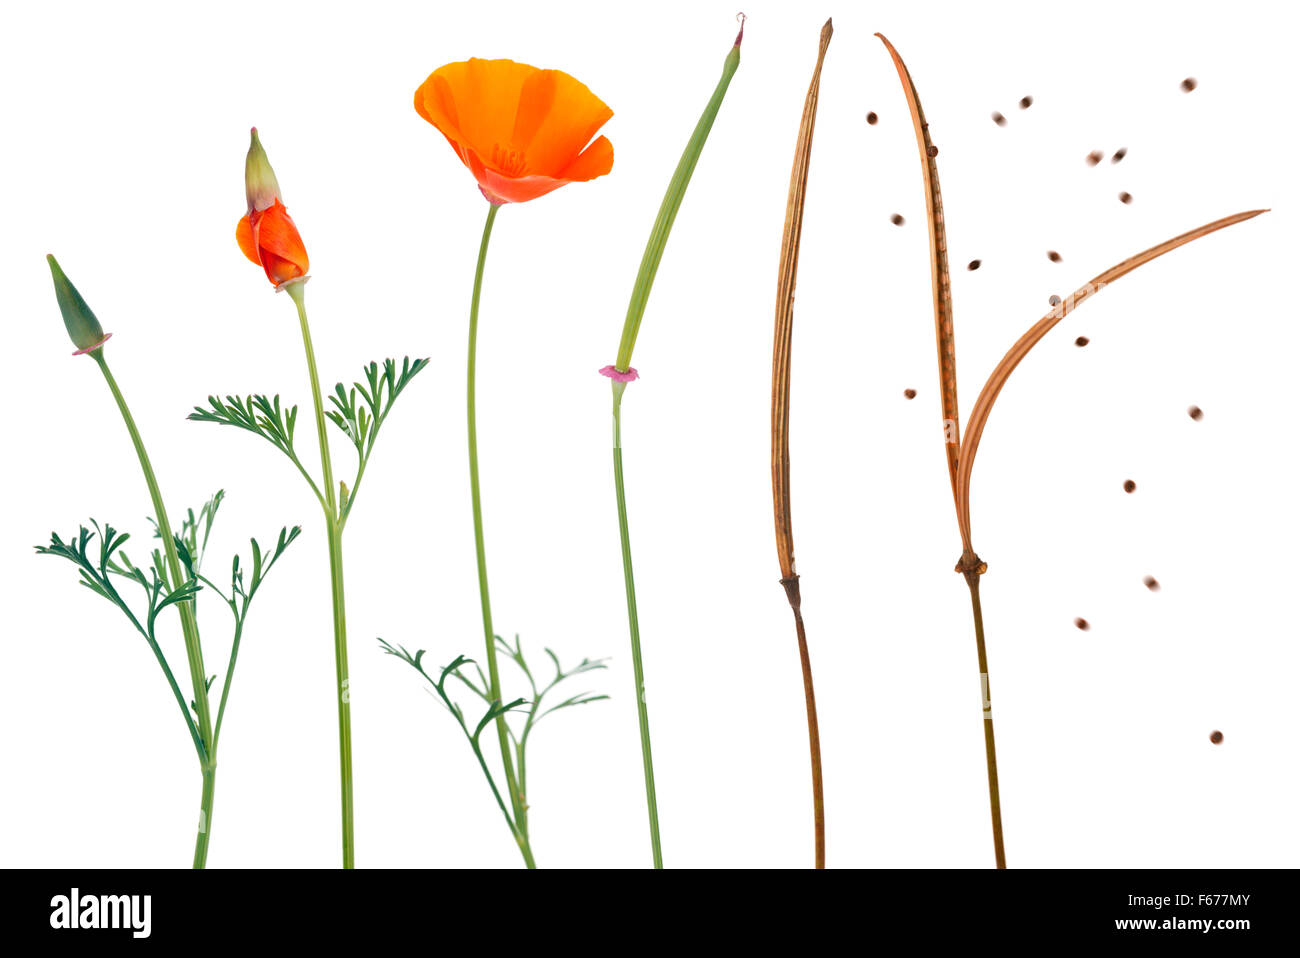 Flower stages stock photos flower stages stock images alamy eschscholzia californica california poppy sequence showing the different stages of growth mightylinksfo